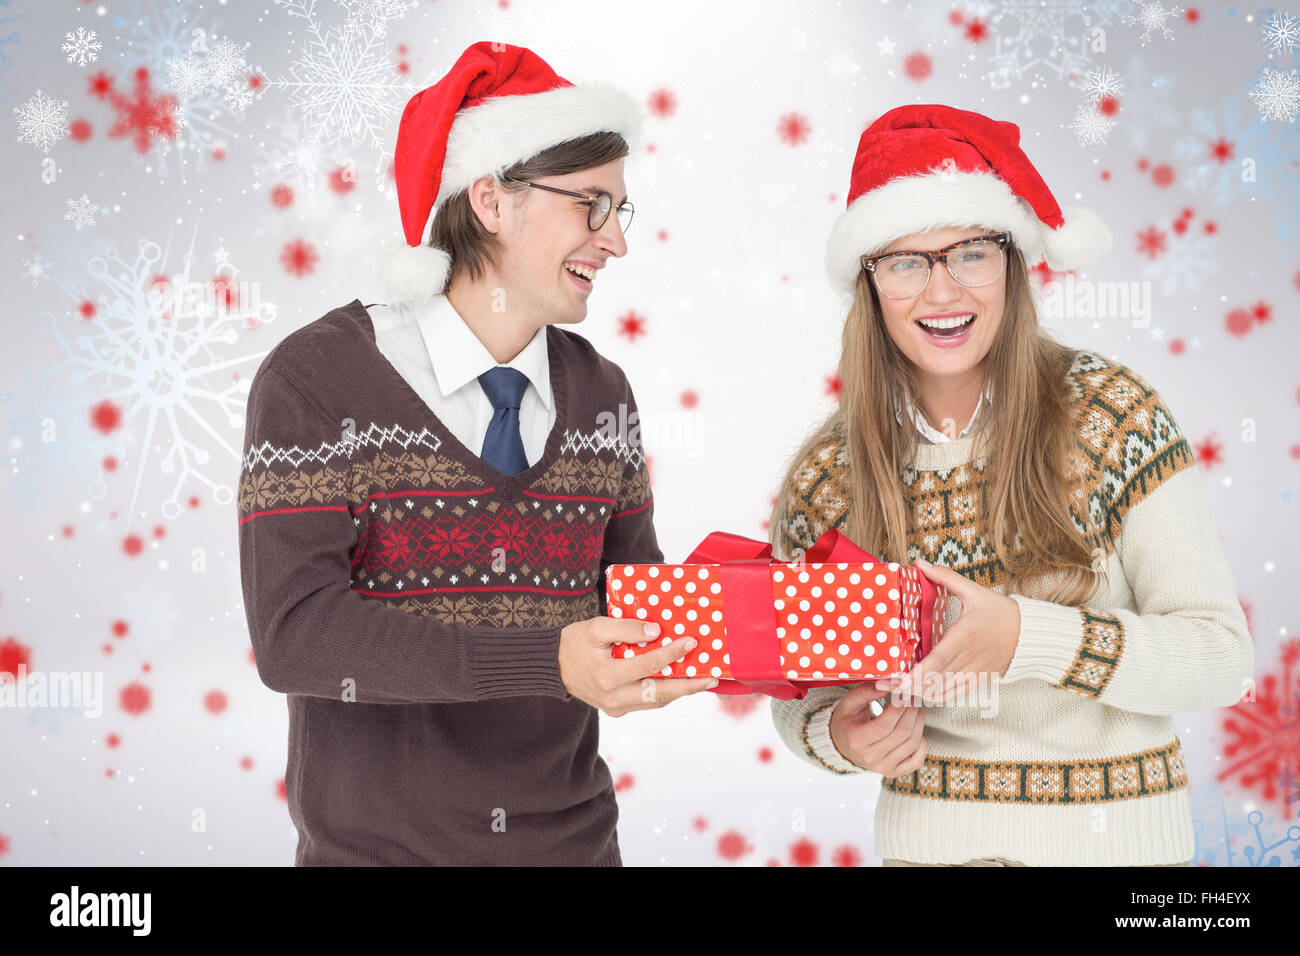 Composite image of geeky hipster couple holding present Stock Photo